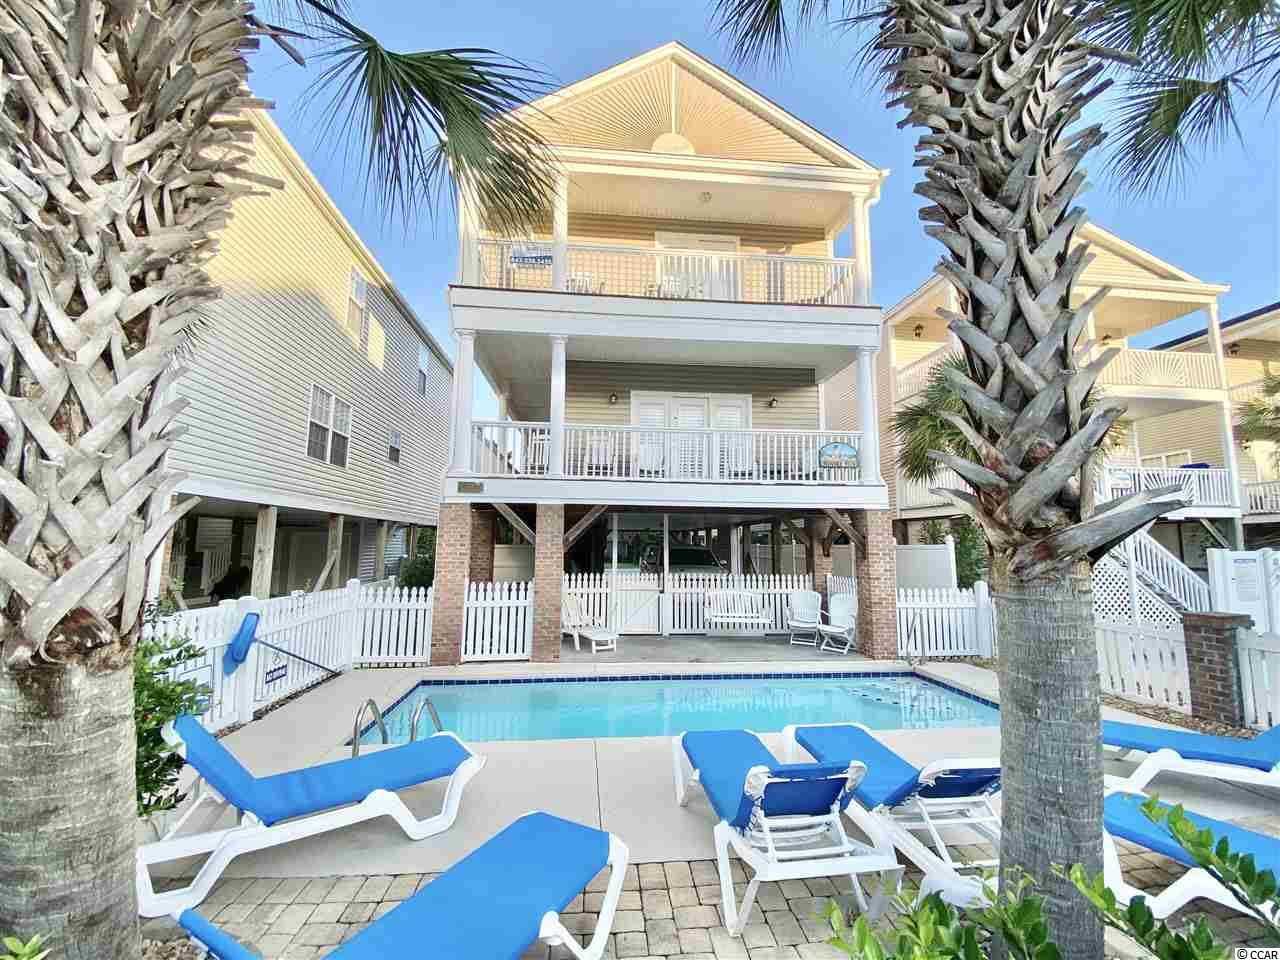 This beach house has it all! Enjoy your own private pool with heater, located across the street from Surfside Beach access with showers. Walk to dinner at the Surfside Diner, Bubbas, River City Cafe or Surfside Beach Pizza, all located near the Surfside Pier. The Surfside Library, tennis courts and playground are also just a short walk away.   As you enter this beach home, you're greeted with an open floor plan that is updated with granite counter tops, stainless steel appliances, crown molding, wainscoting and plantation shutters.  On the main level, you'll find the kitchen with countertop bar seating, casual dining area, family room, two bedrooms and a full bathroom. The second floor has four additional bedrooms and three full bathrooms. There is an option for a second master suite.  Enjoy the beach breeze and private pool view from your dual porch balconies on the main and second floors. This beach house has a steady rental history for the past ten years with Surfside Realty under the name Moore Fun.  The home, pool and landscaping is professionally managed and maintained.   *The majority of furniture in the home and televisions in every room convey with suitable offer. Seller will specify furniture pieces which does no convey. *Broker is related to Seller. *Buyer/Buyer's Agent to verify all information.